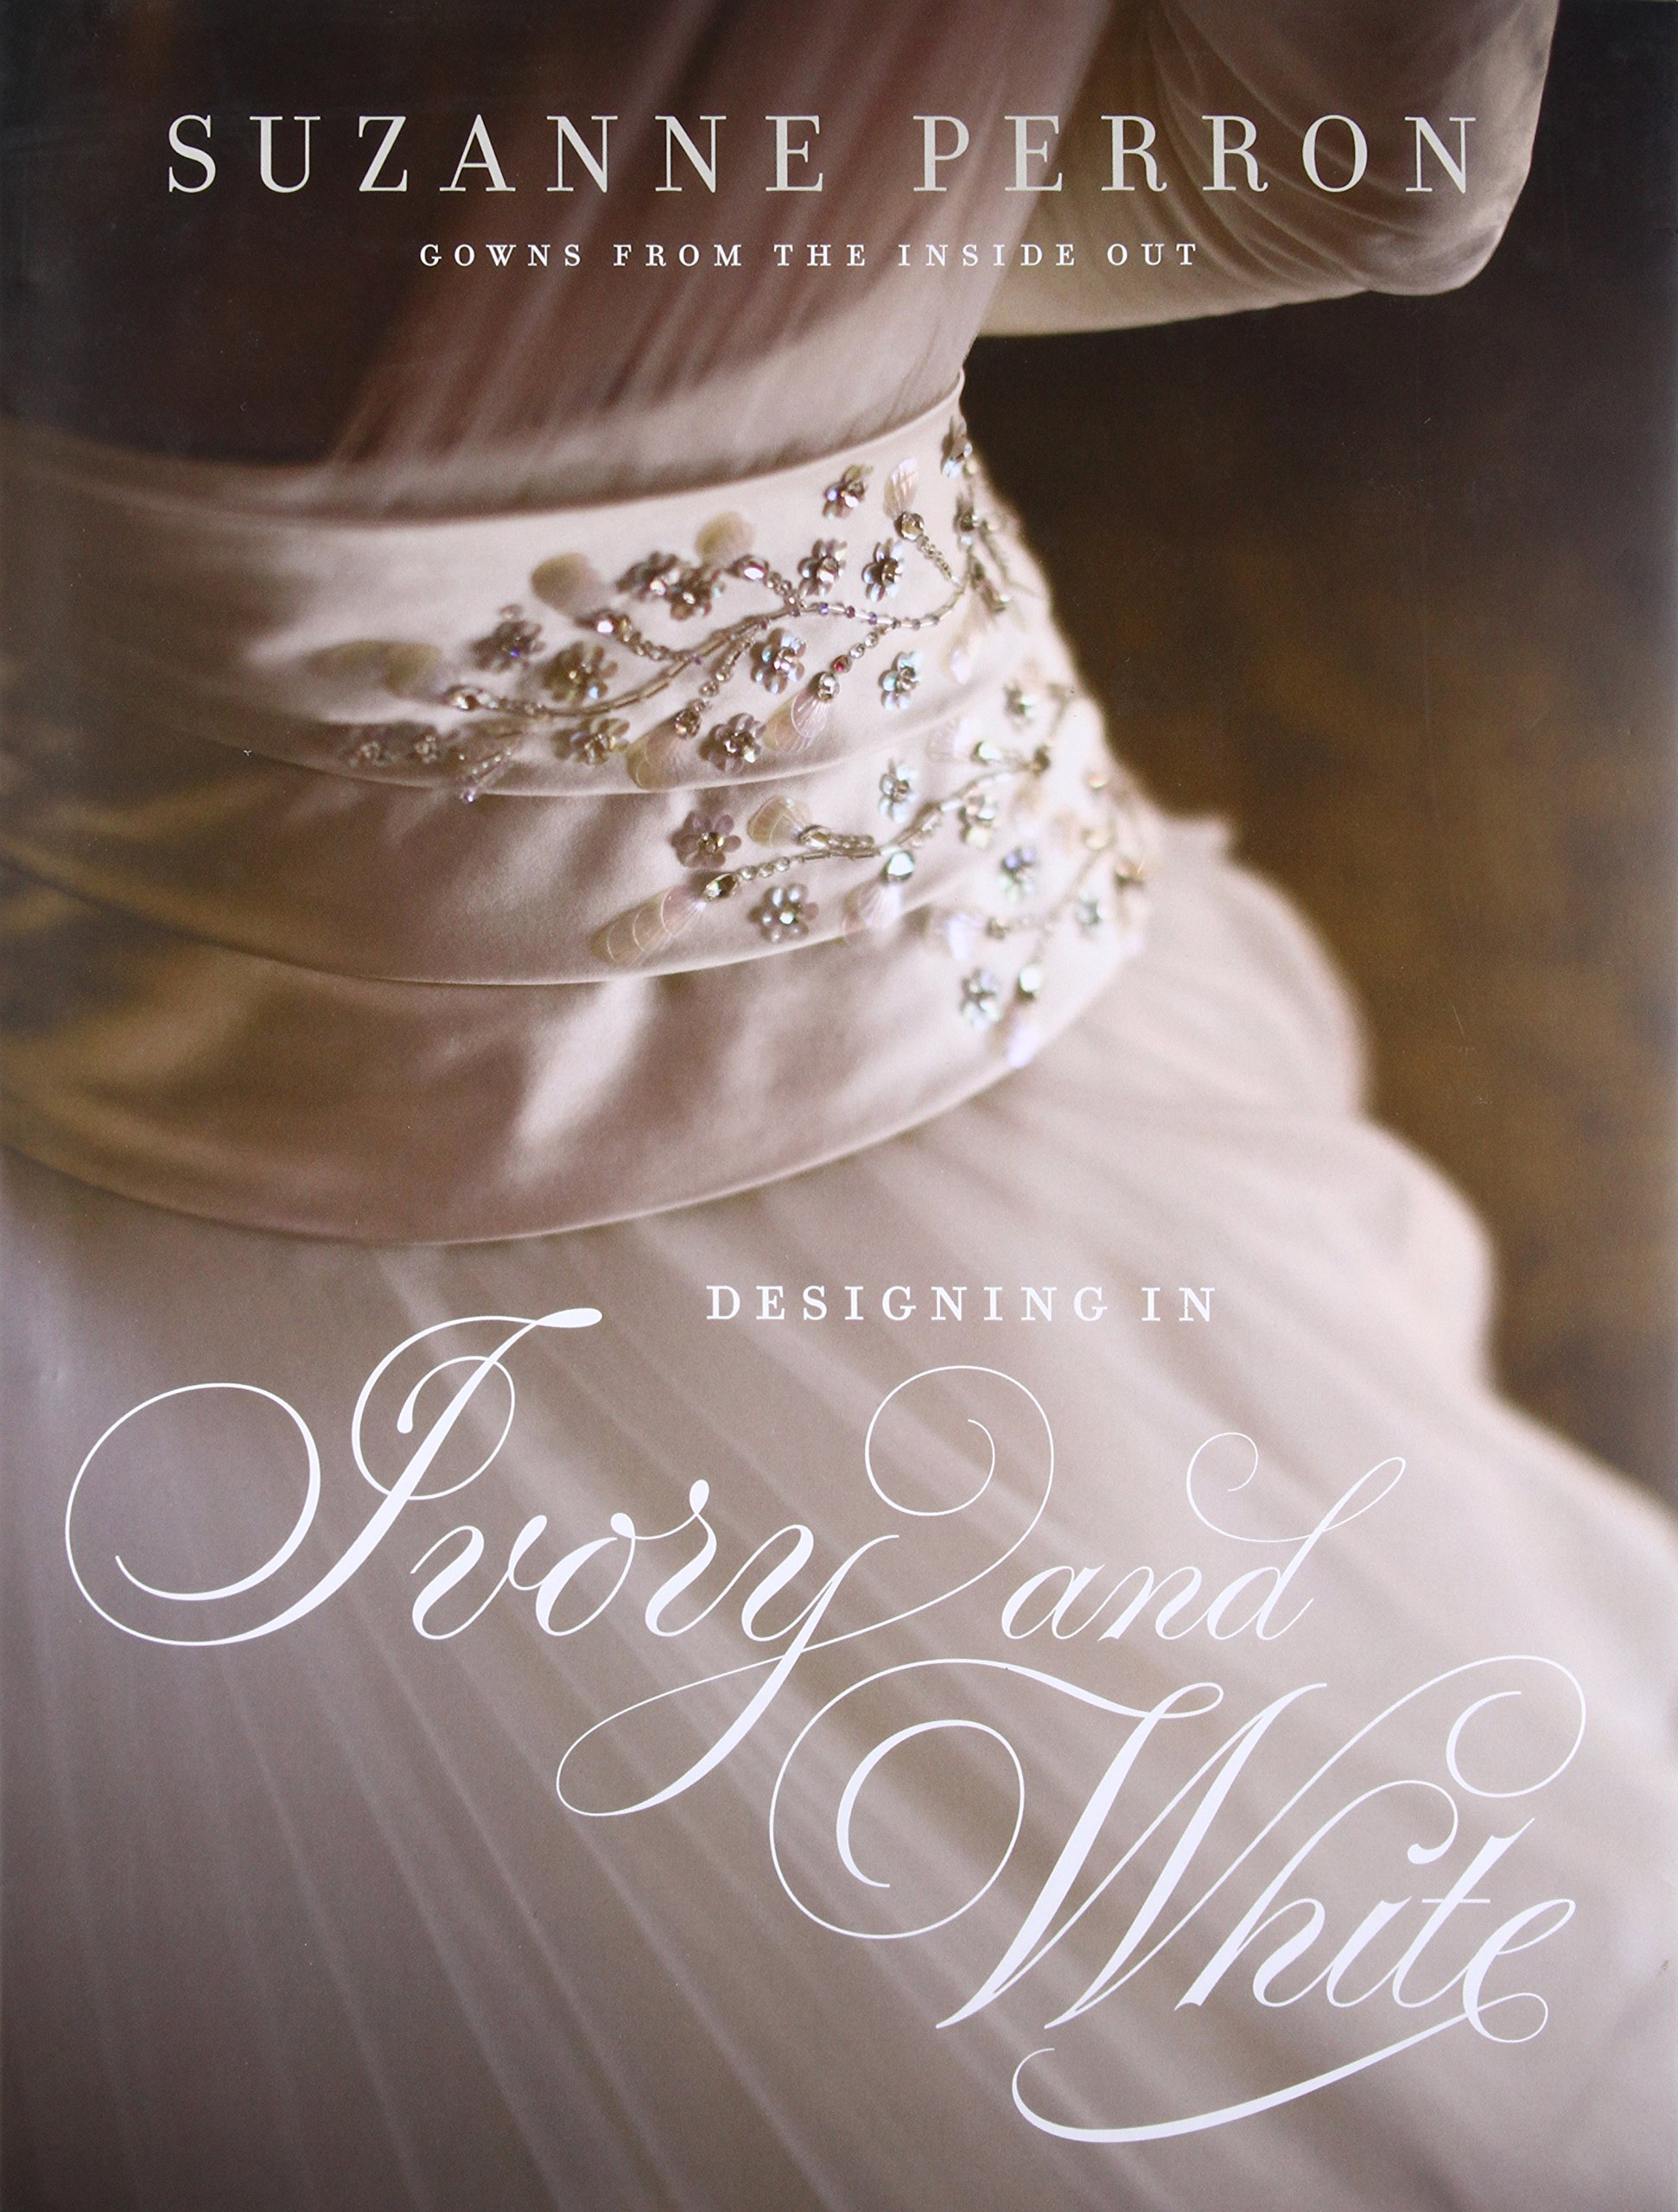 Designing in Ivory and White: Suzanne Perron Gowns from the Inside Out (Southern Literary Studies)